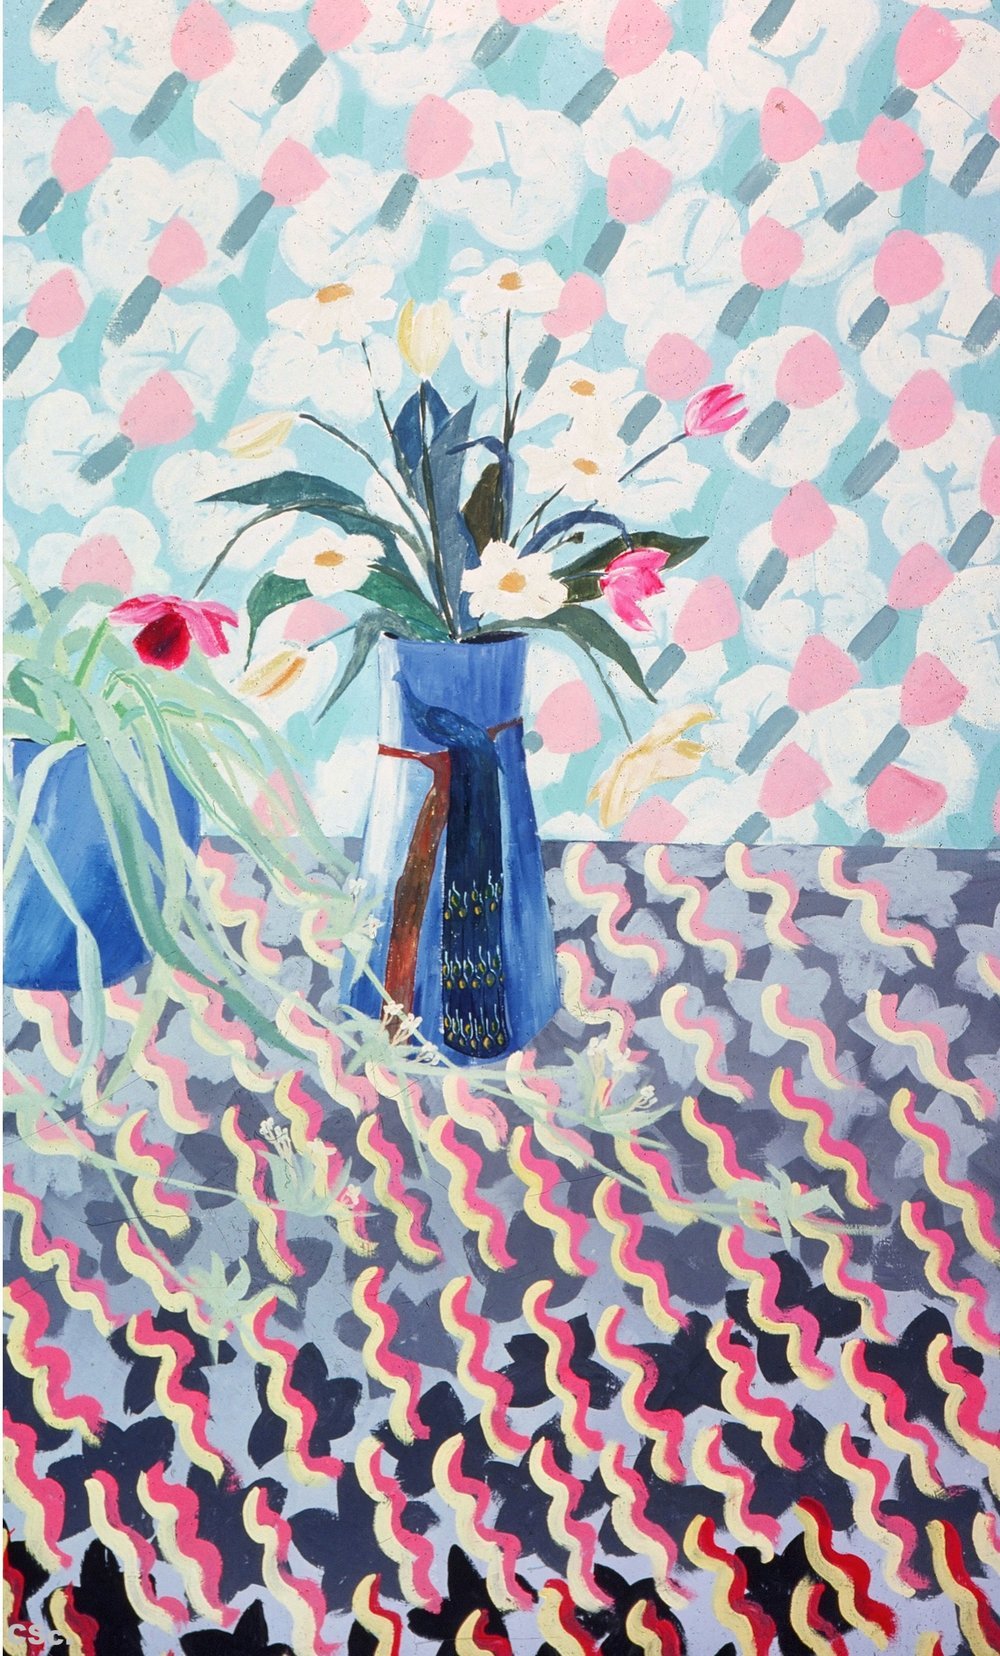 Flowers Against Wallpaper, 1978, acrylic on canvas, 130x80cm